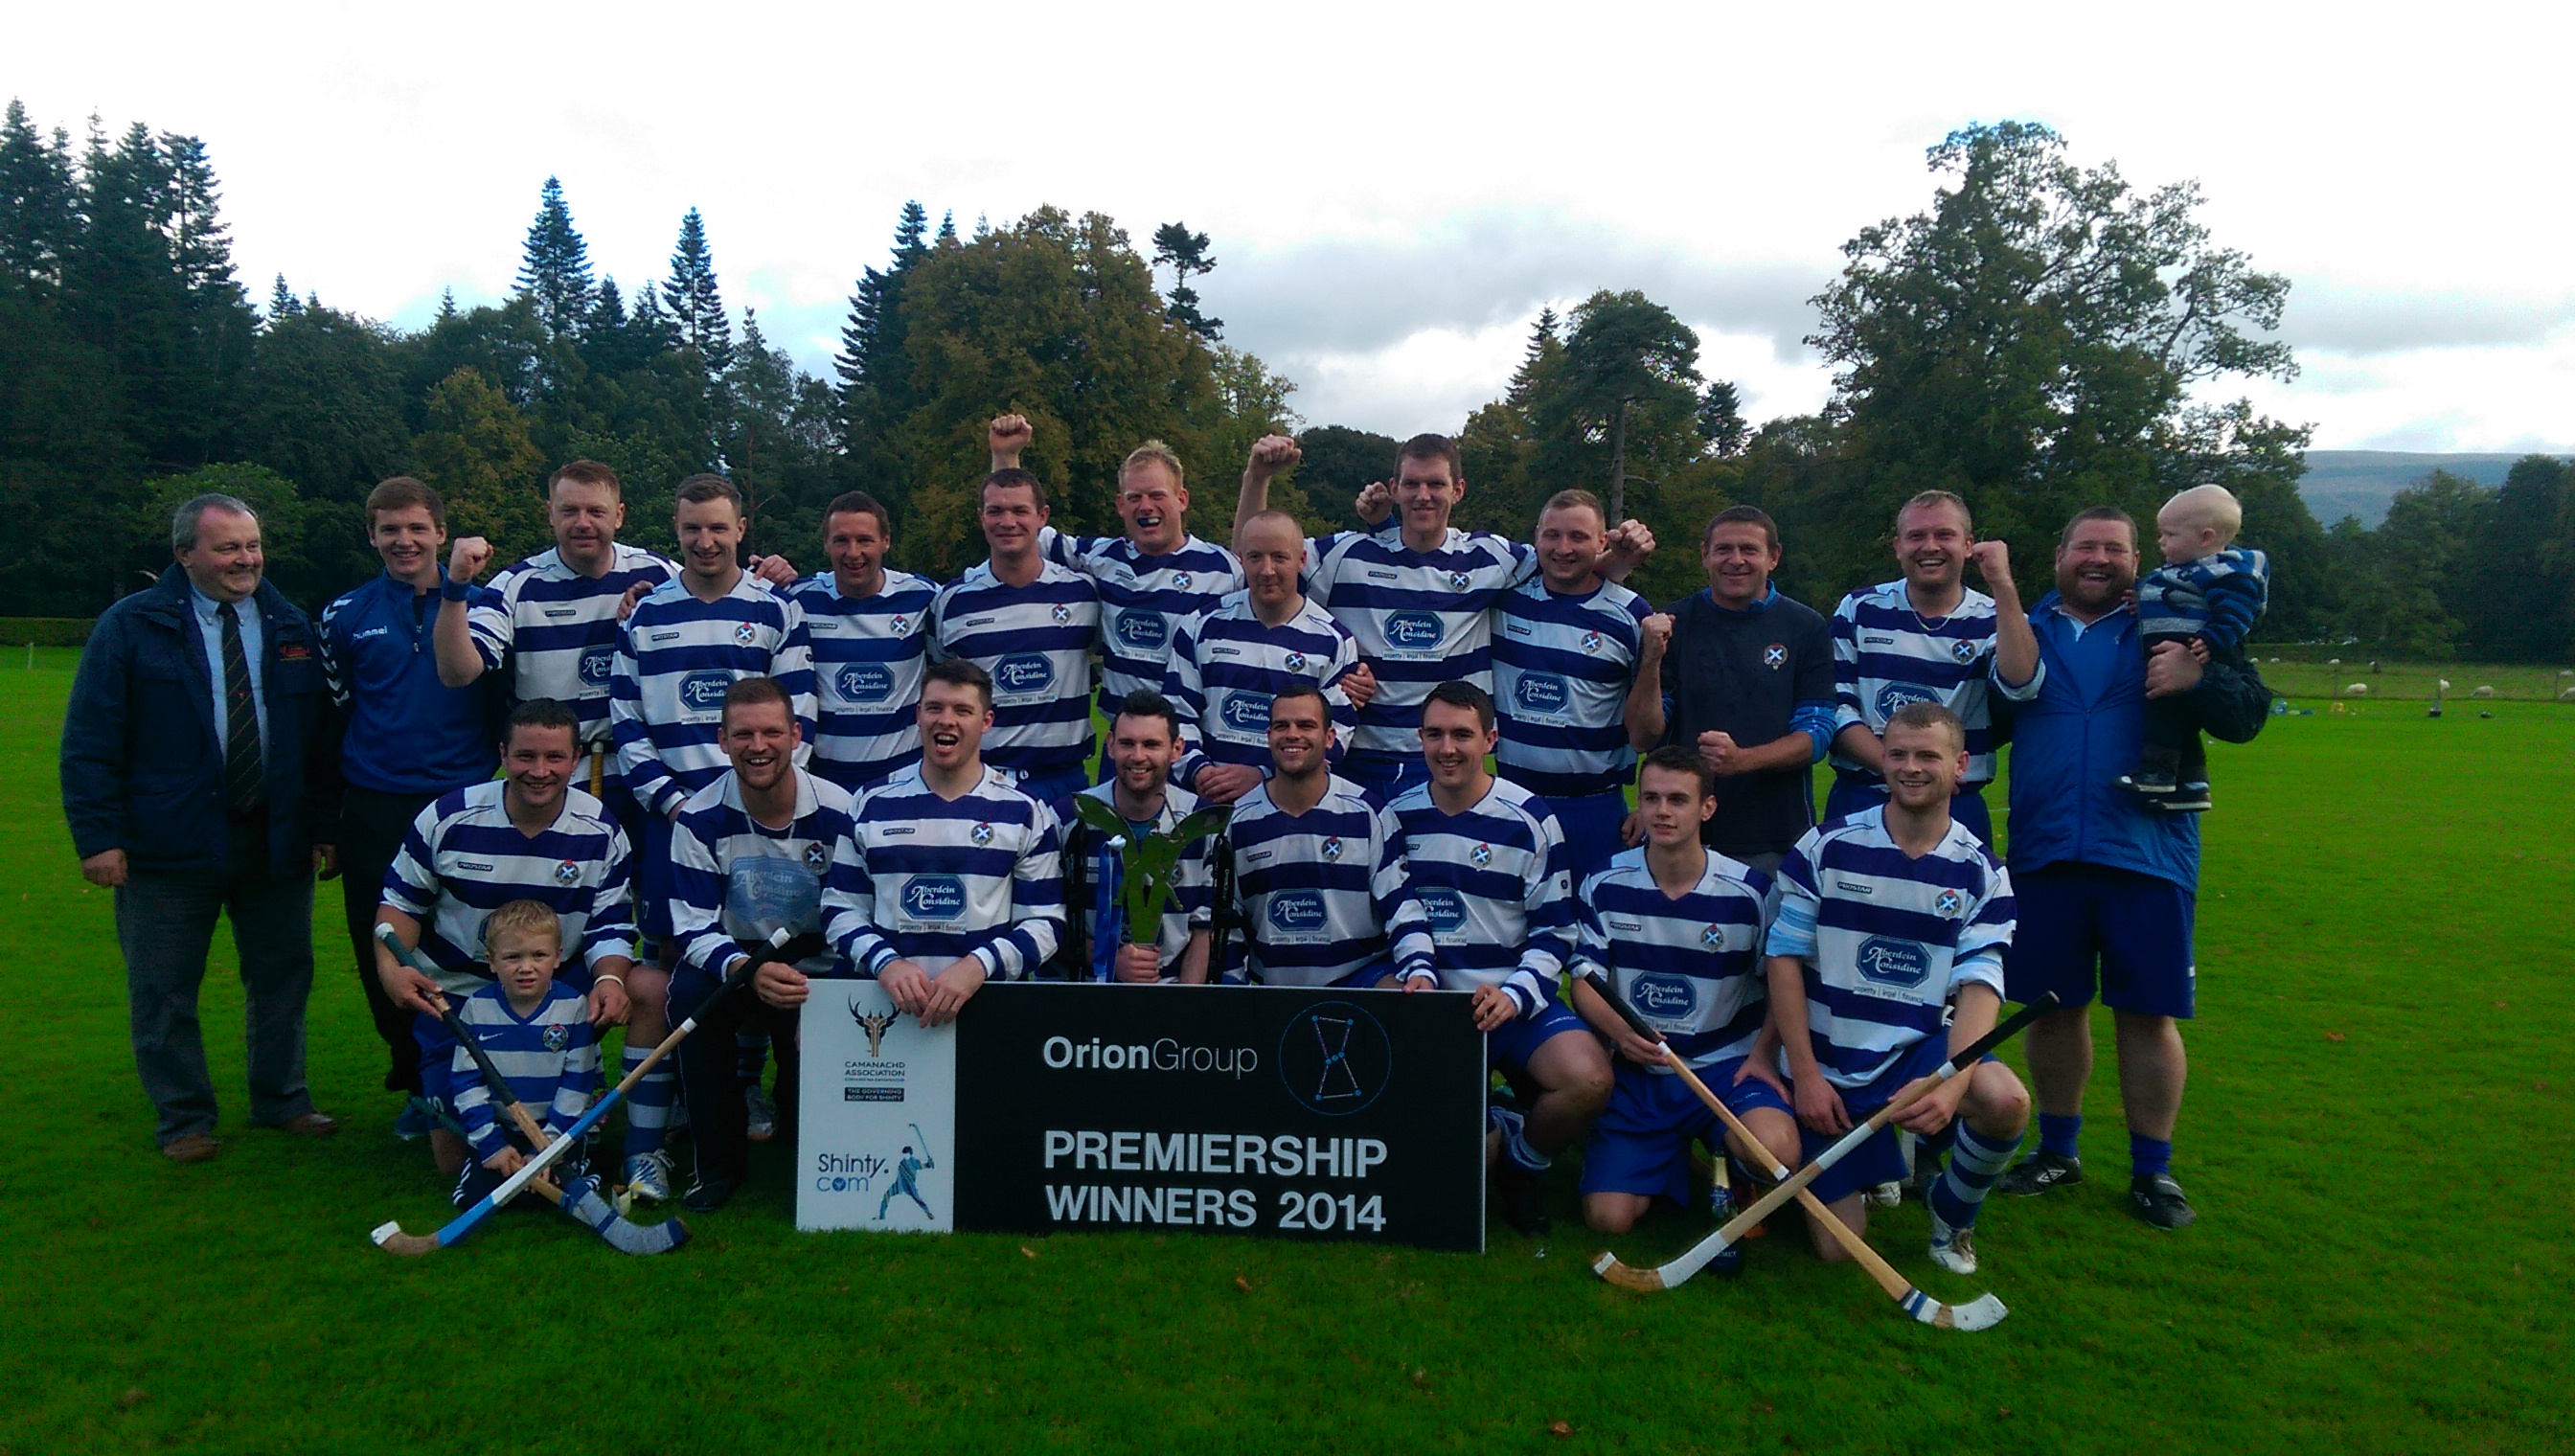 Congratulations to Newtonmore Cammanach Club - Orion Group Premiership Champions